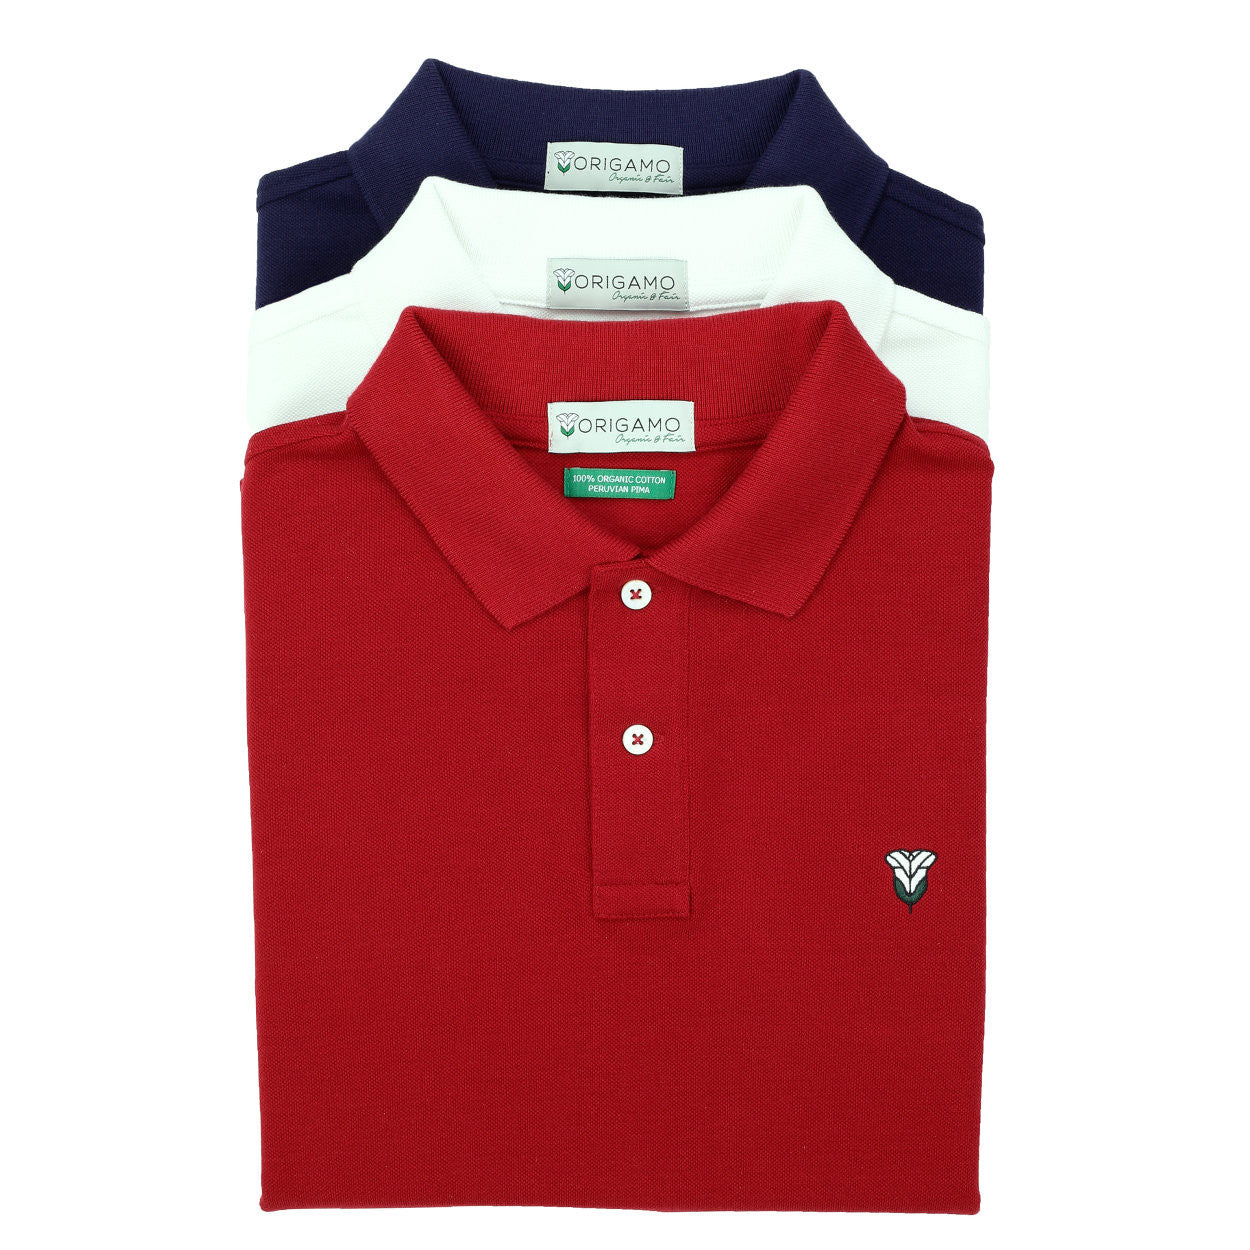 Pacific Polo Plain Crimson Red </br>Double Pique - 100% Organic Pima Cotton